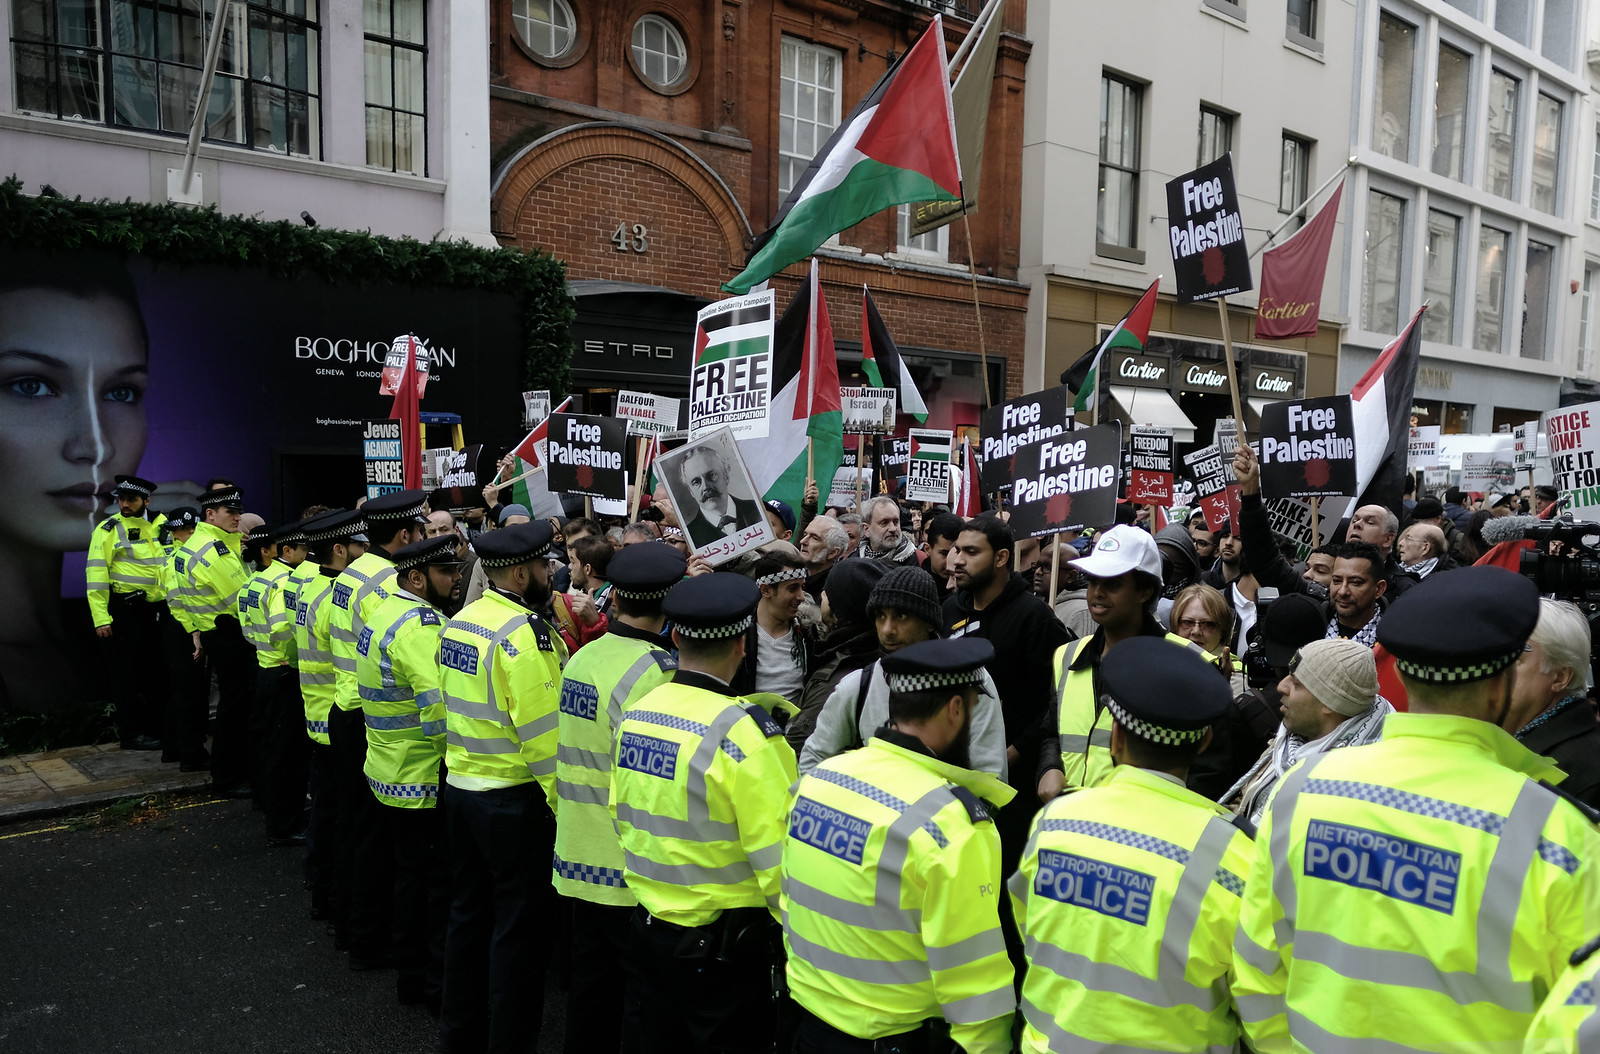 Solidarity with the Palestinians versus the pro-Zionist British State | by alisdare1